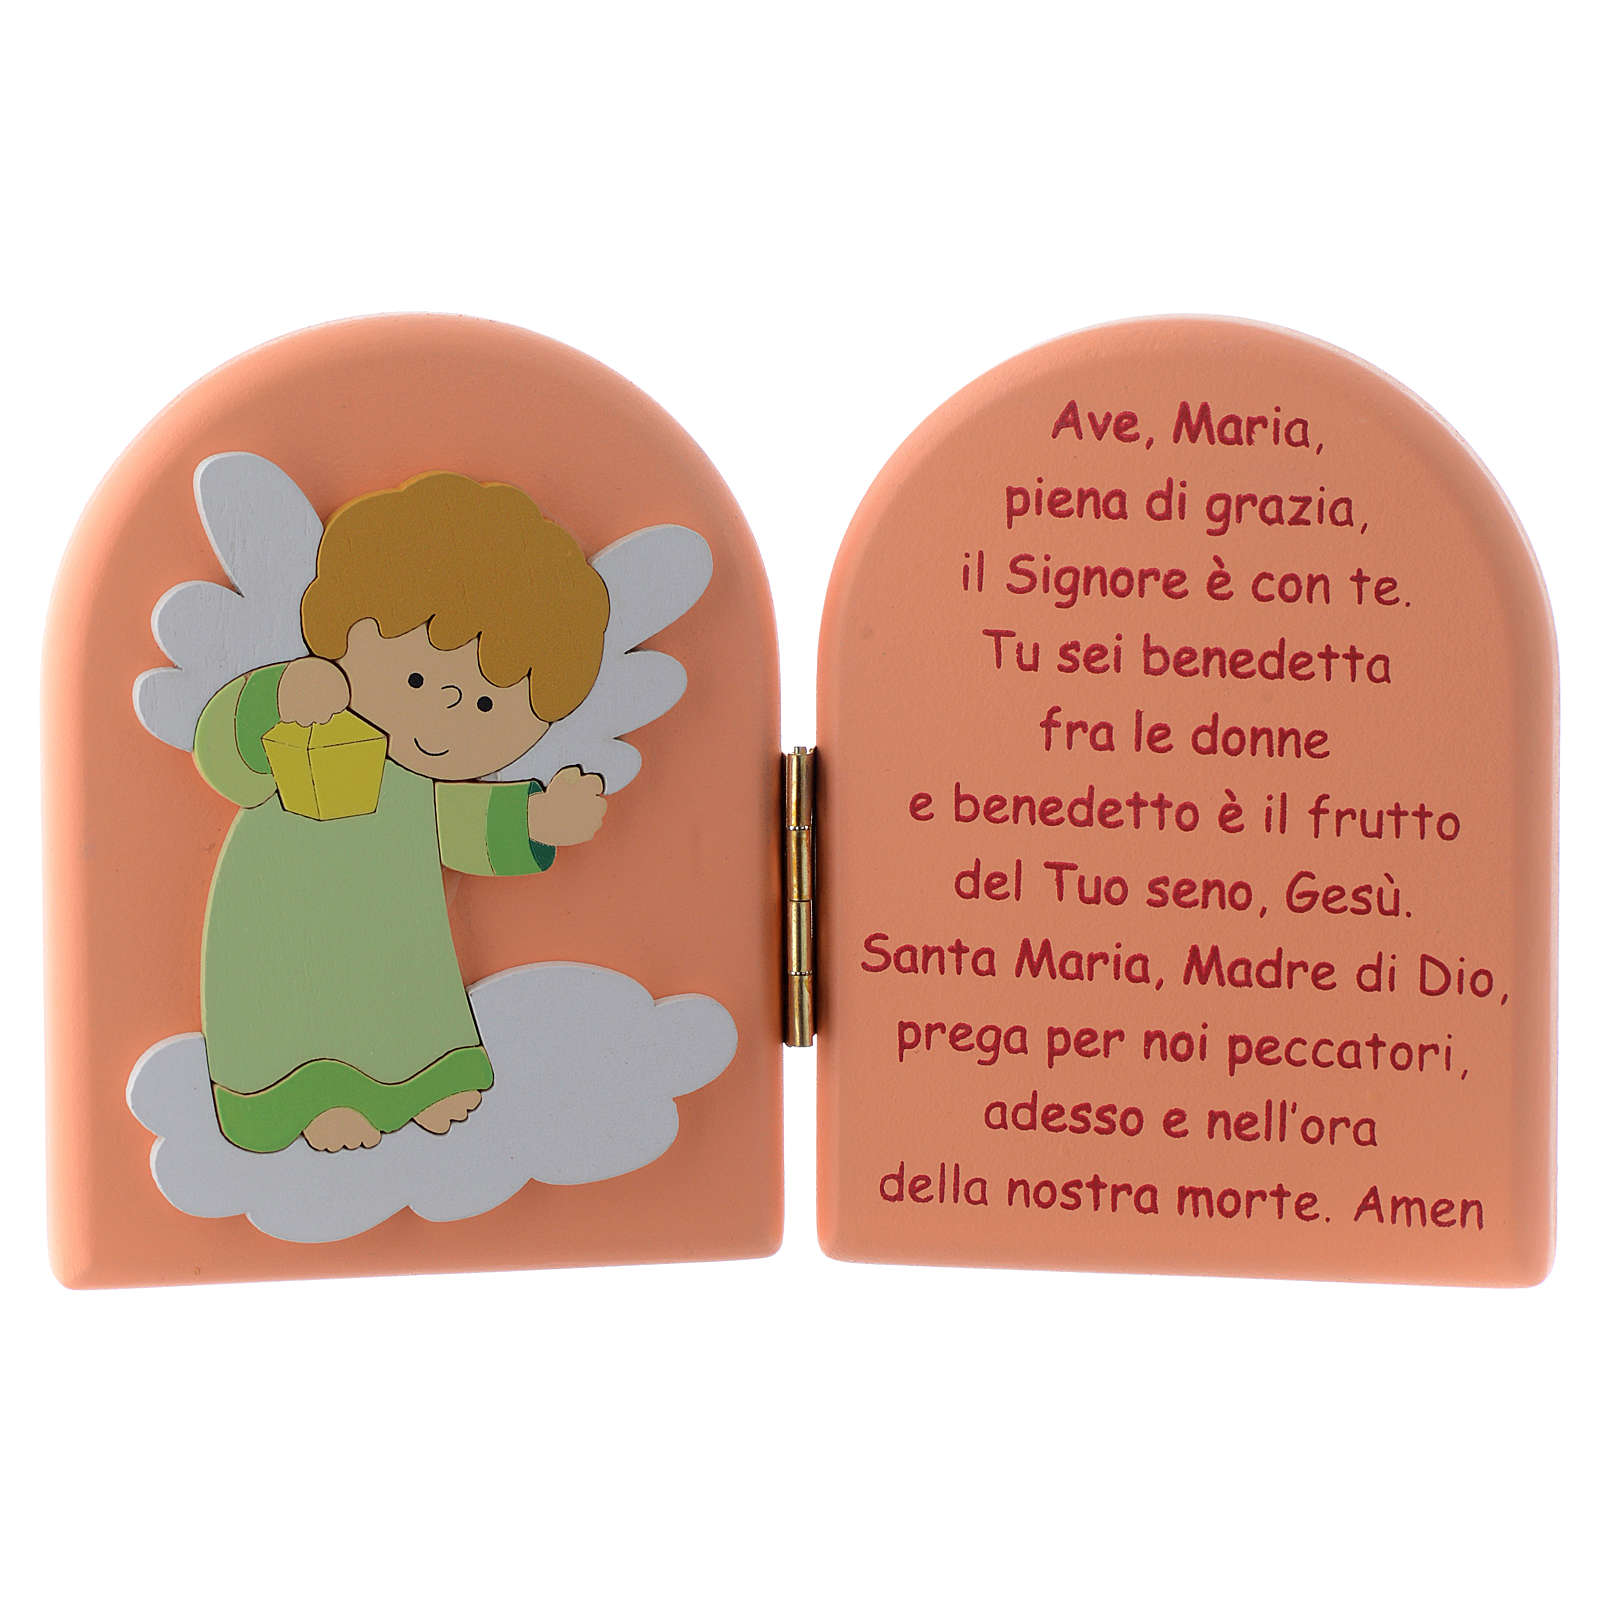 Hail Mary diptych with green Angel in pink wood 10x15 cm 3